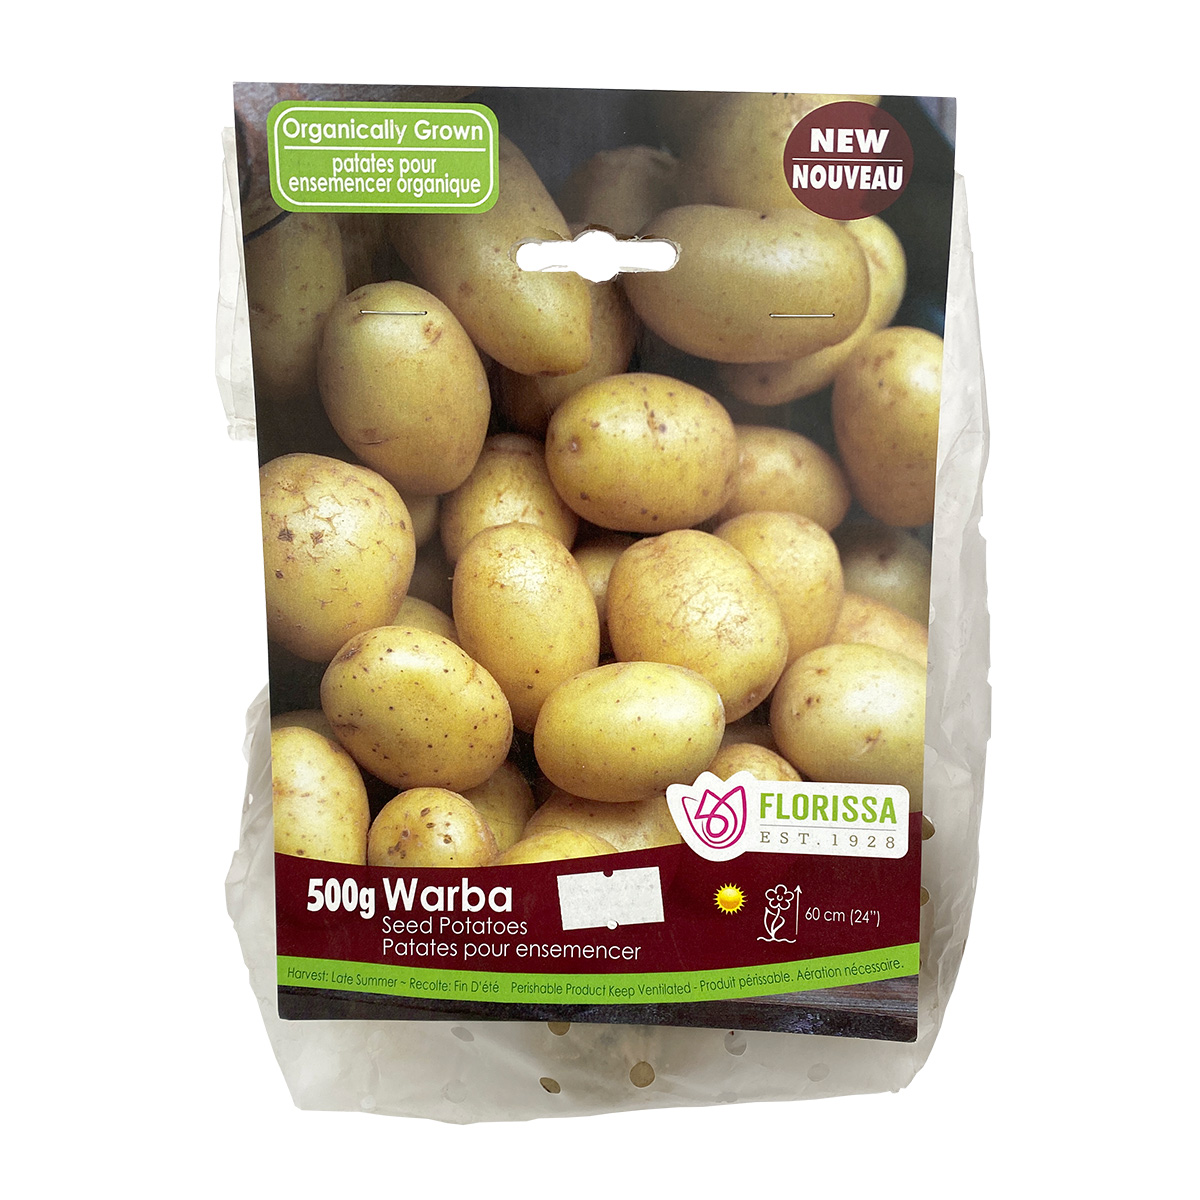 SeedPotatoes_Warba_500g.jpg